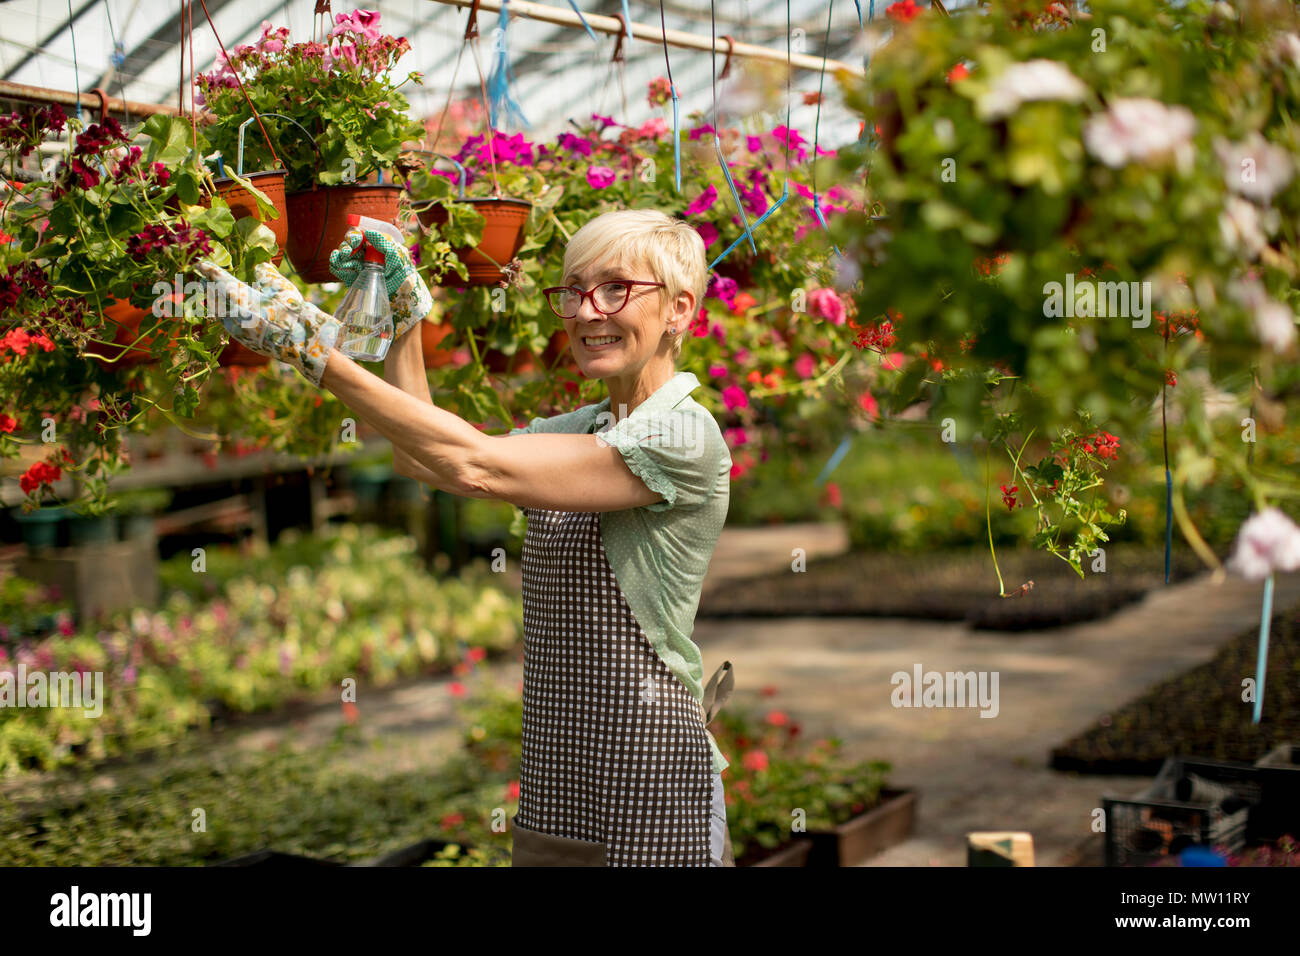 Portrait of  happy senior  florist woman standing and using sprayer in the large flower garden - Stock Image